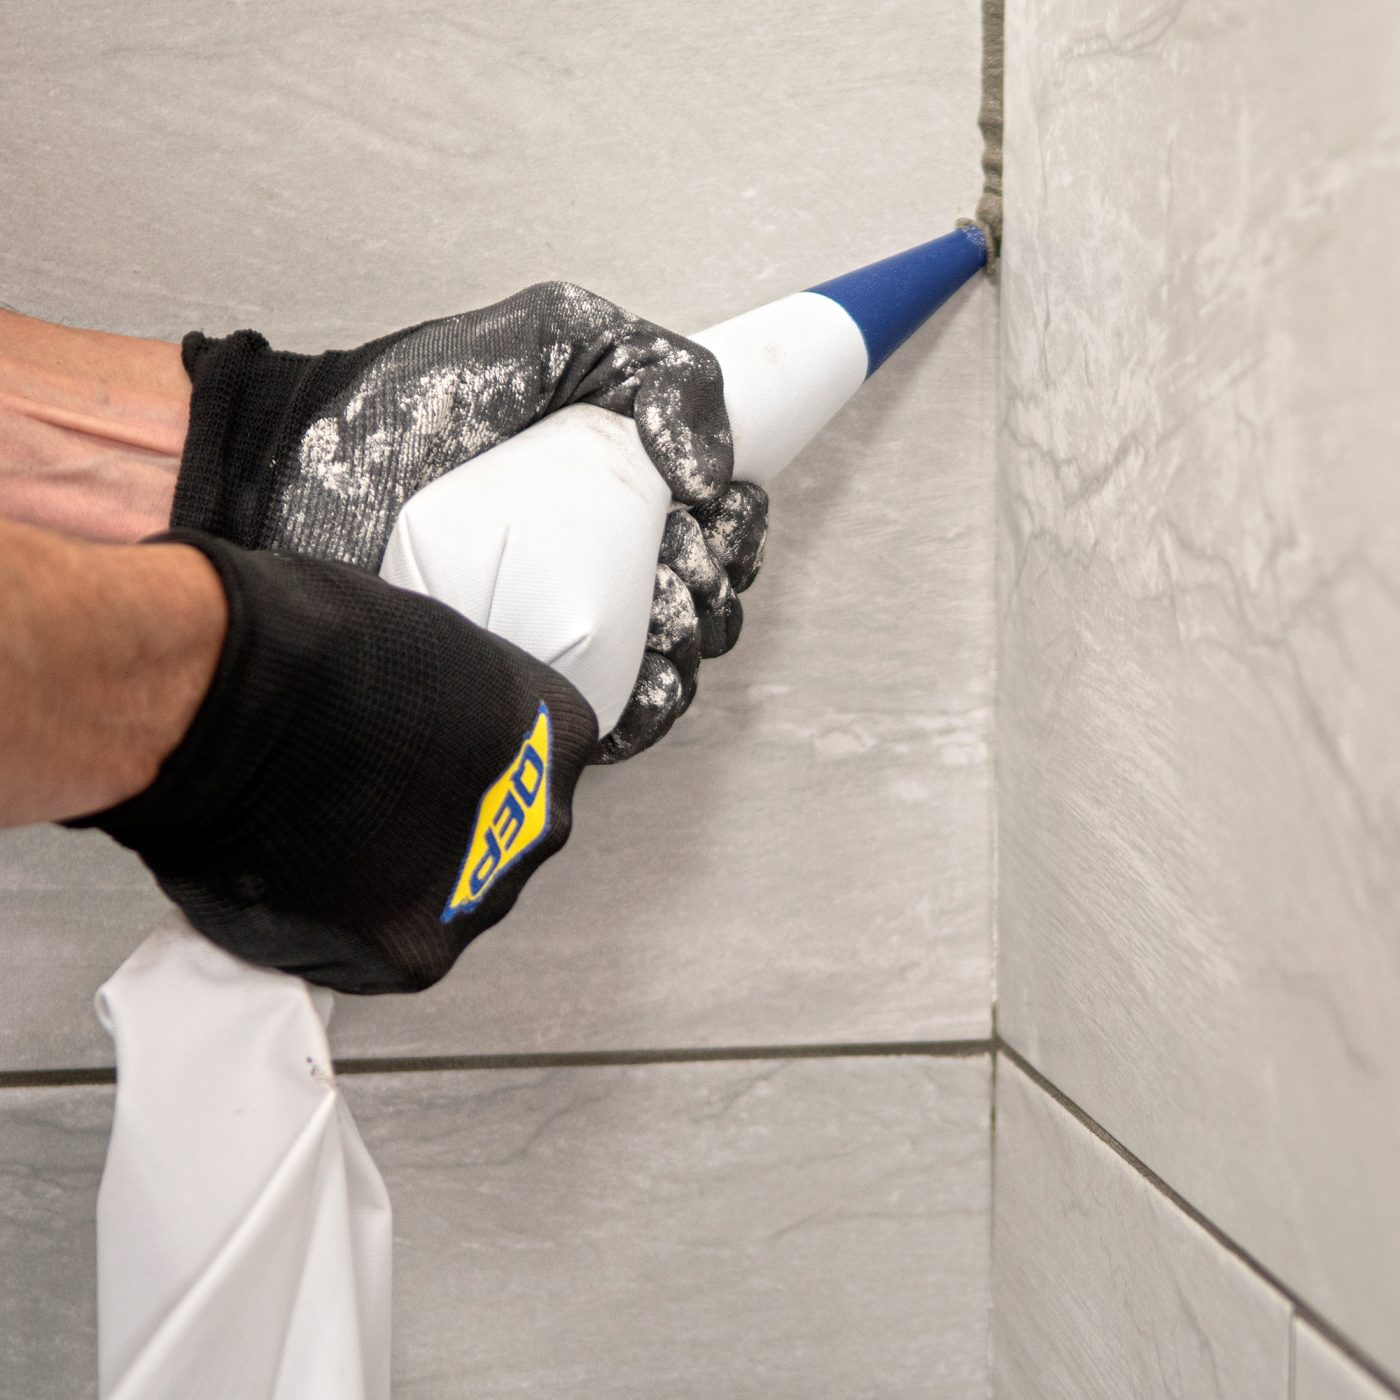 Grout Bag